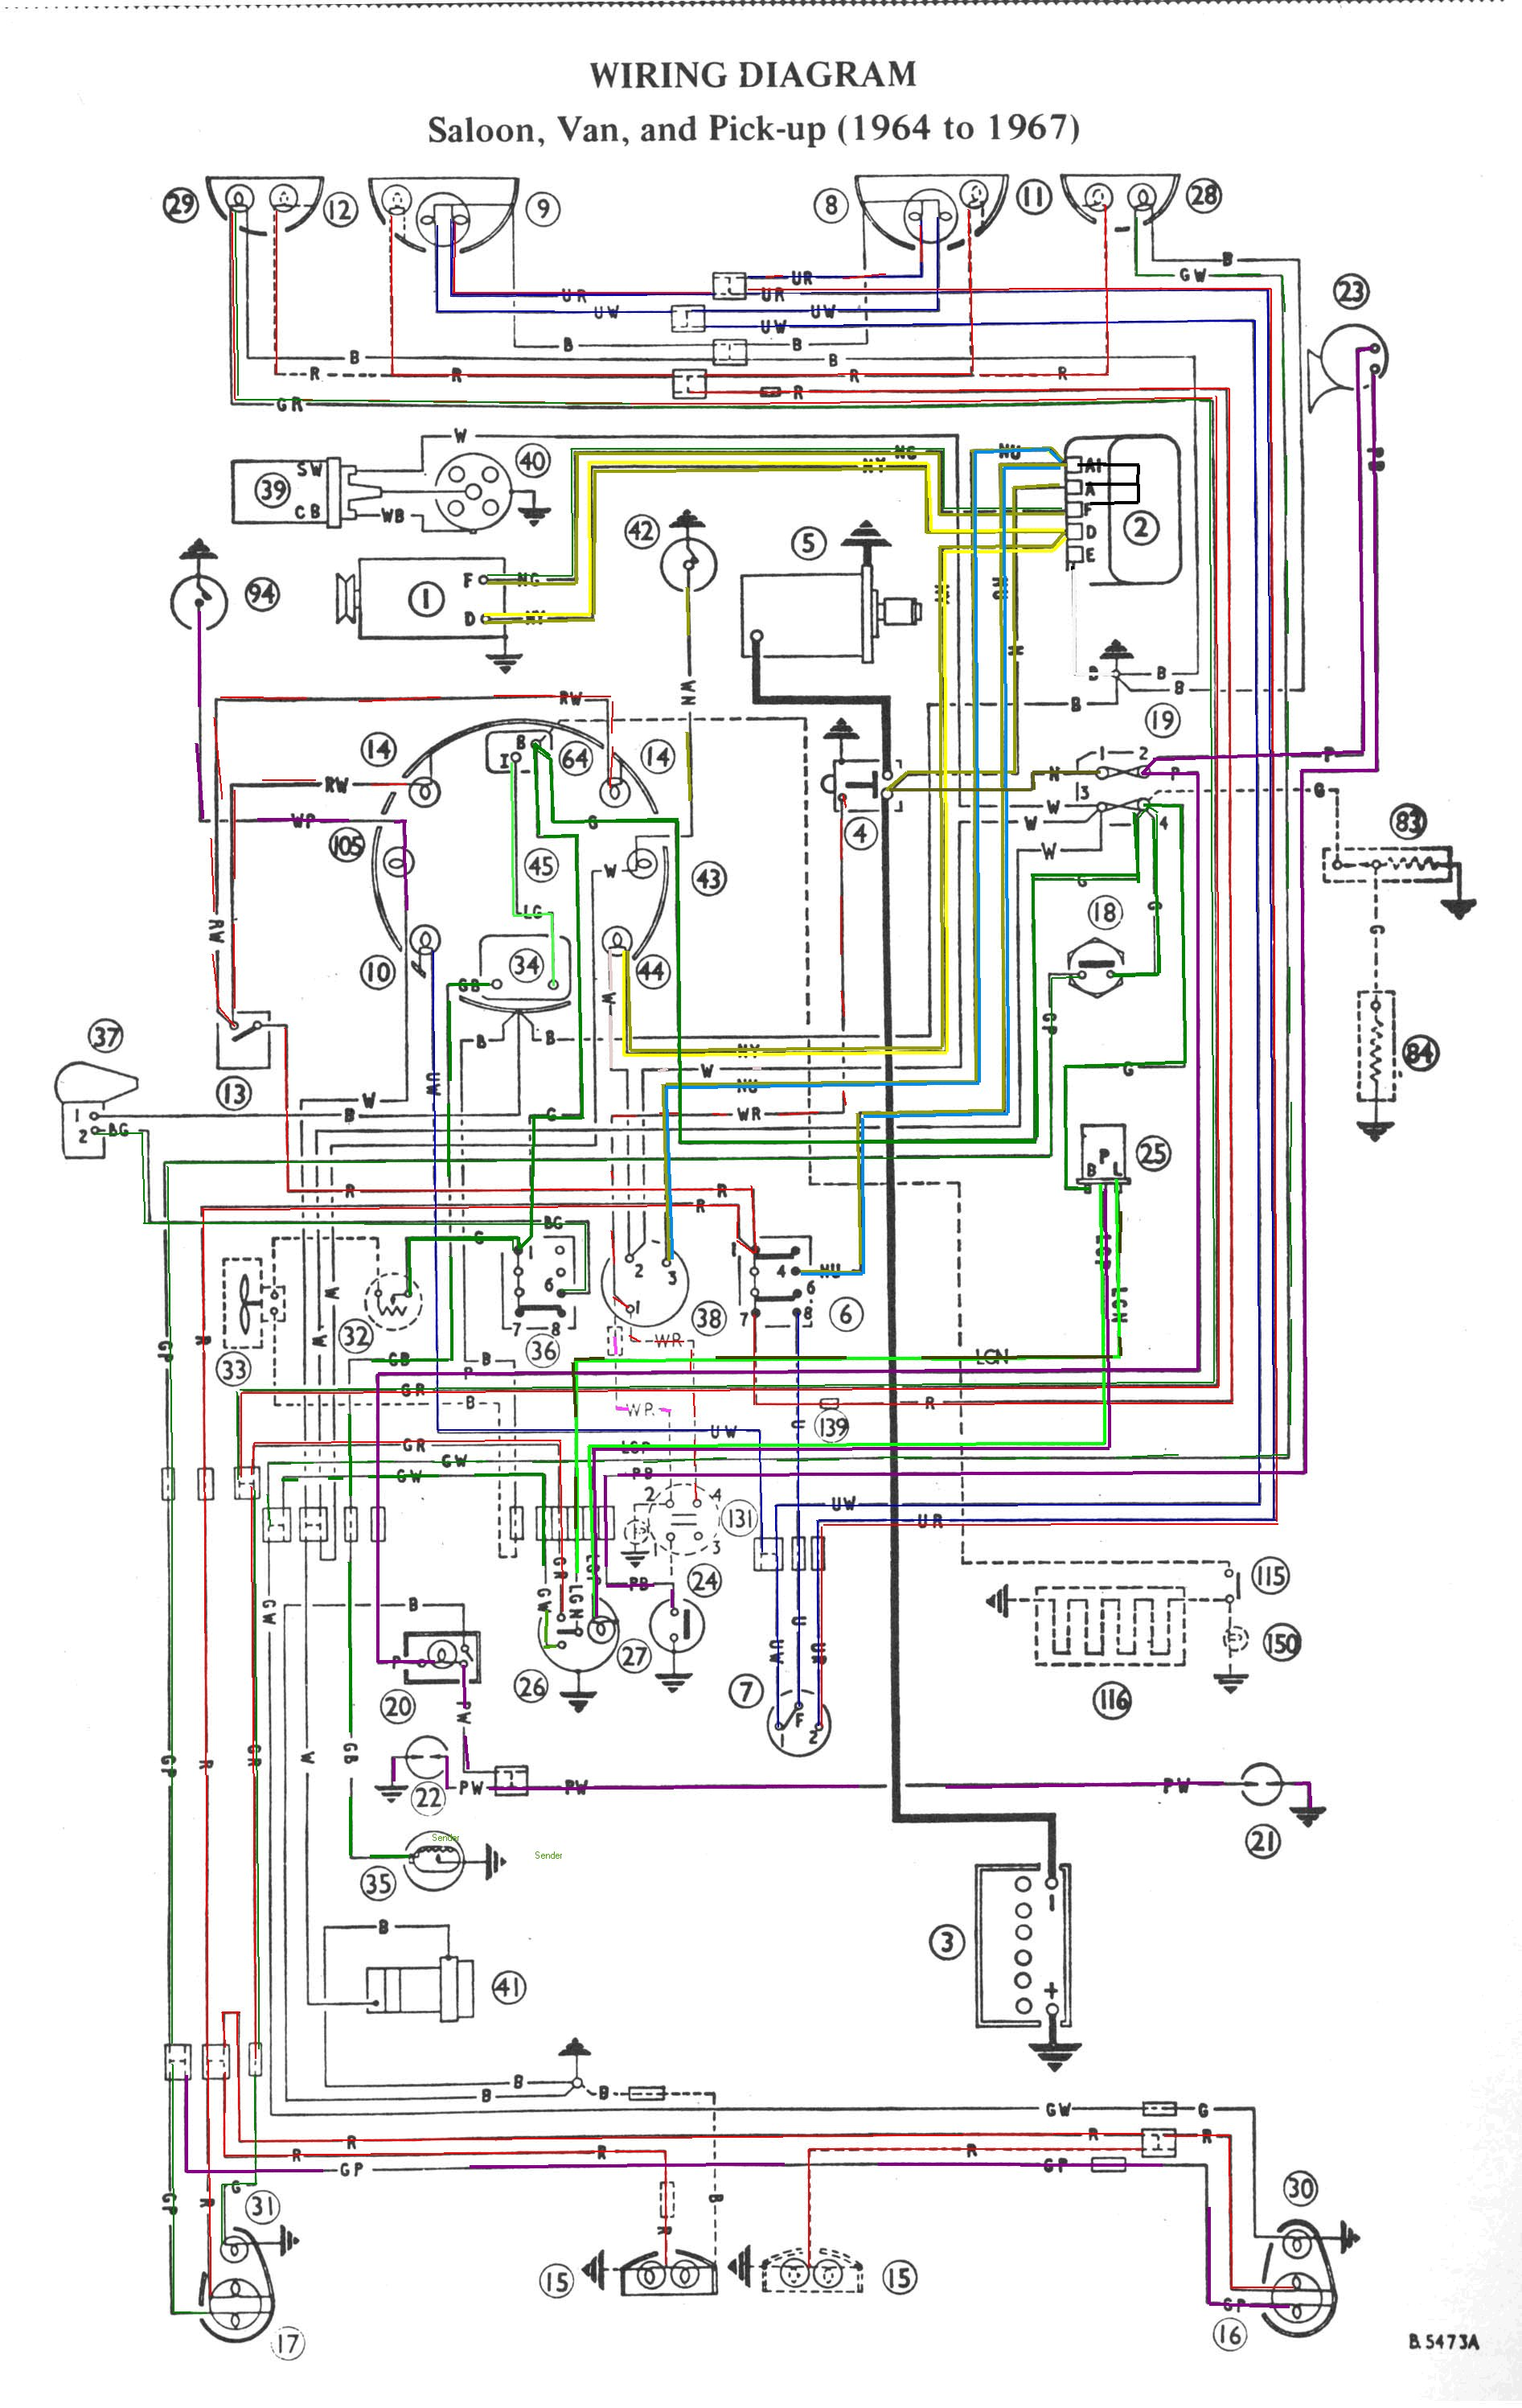 wiring diagram relay images twin hs 2 details color wiring diagram pg1 color wiring diagram pg2